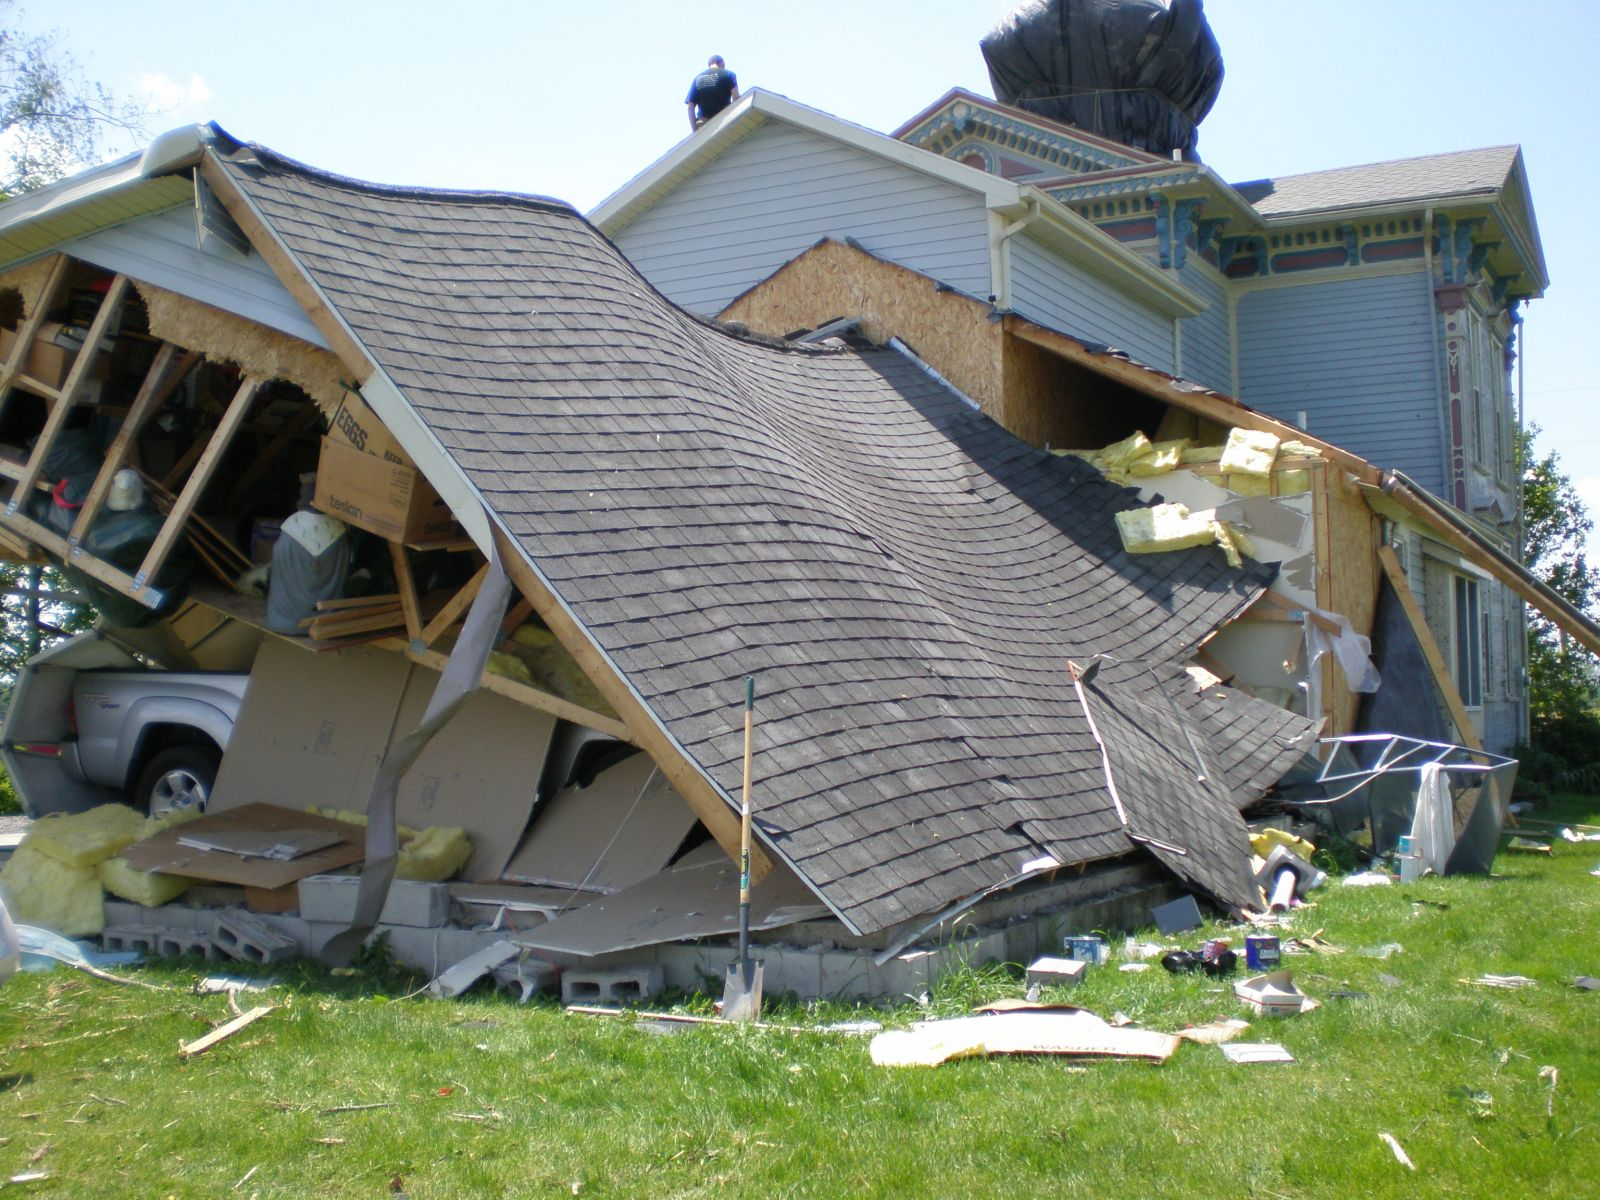 structural collapse of home over garage